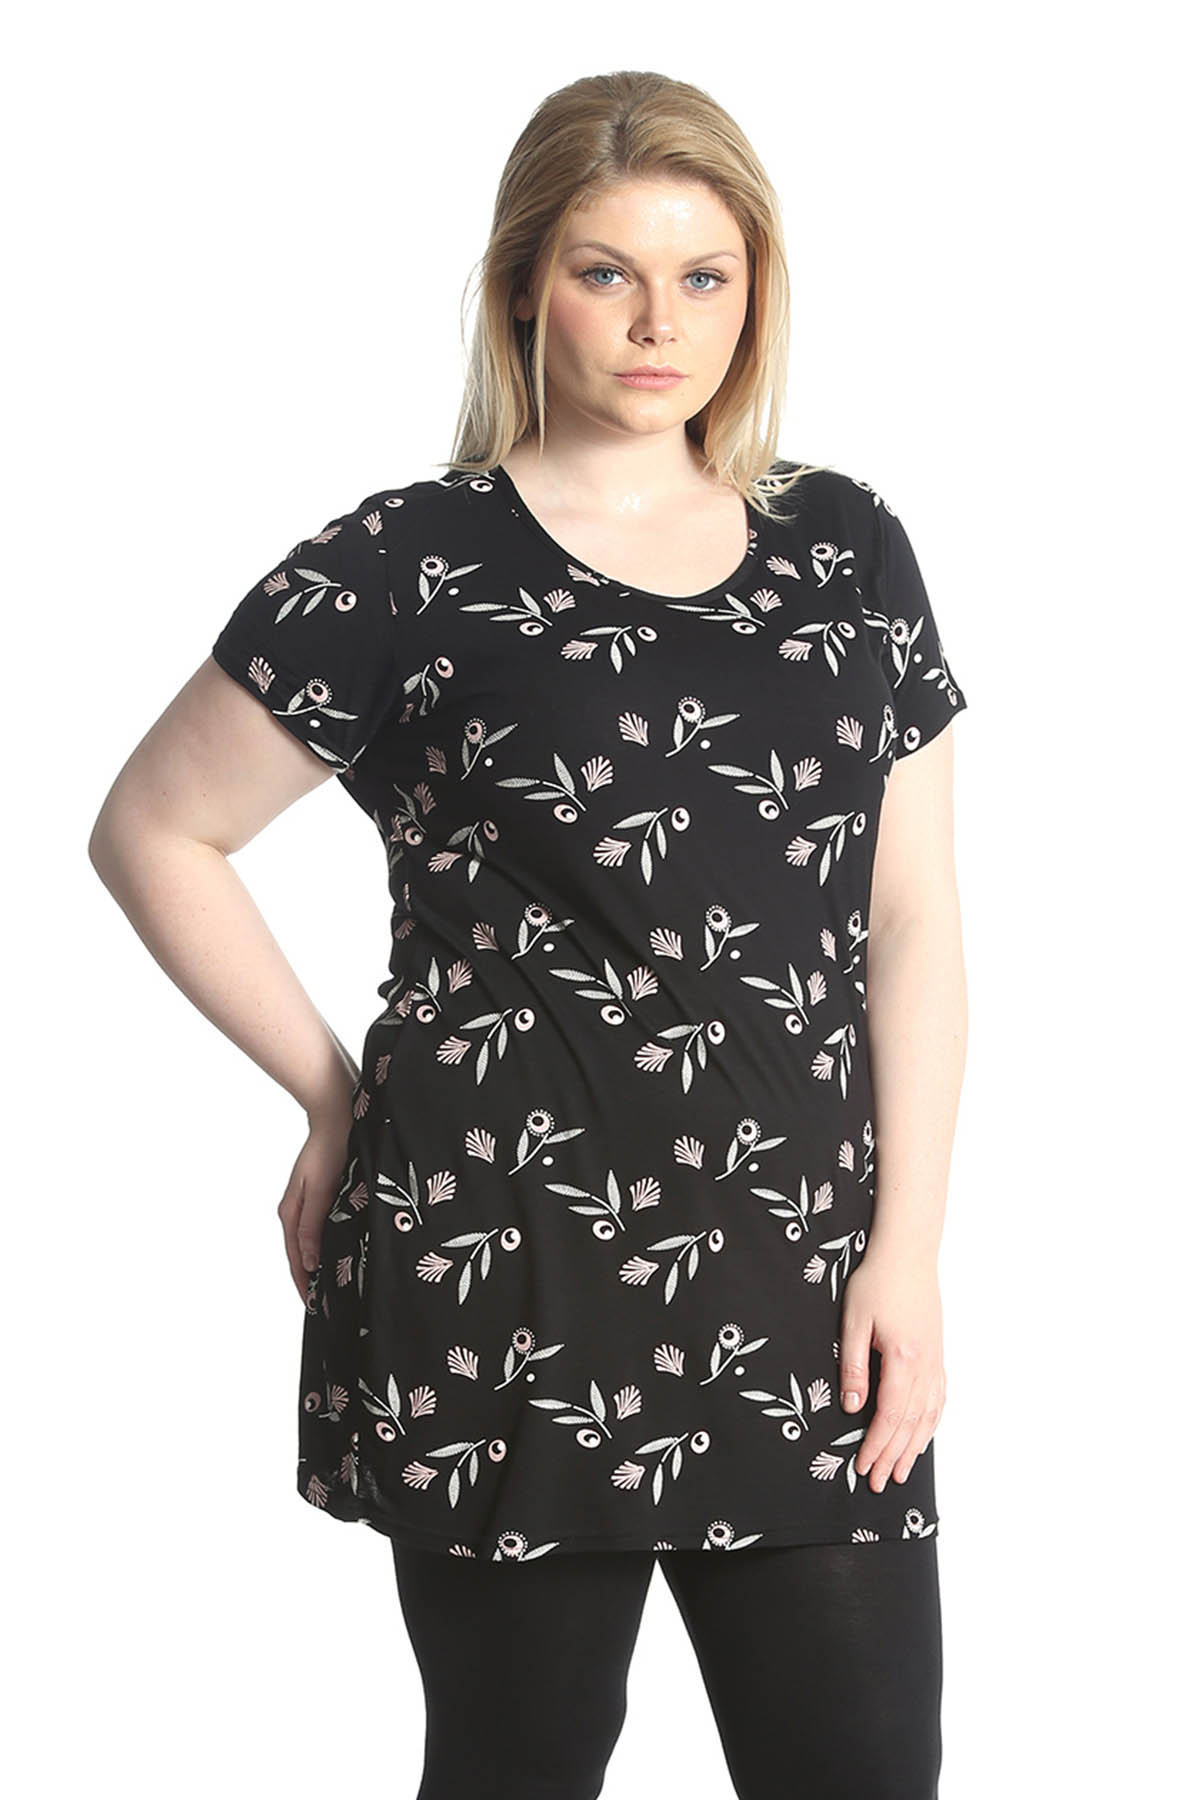 New Womens Tops Plus Size Ladies T-Shirt Floral Tunic Leaf ...